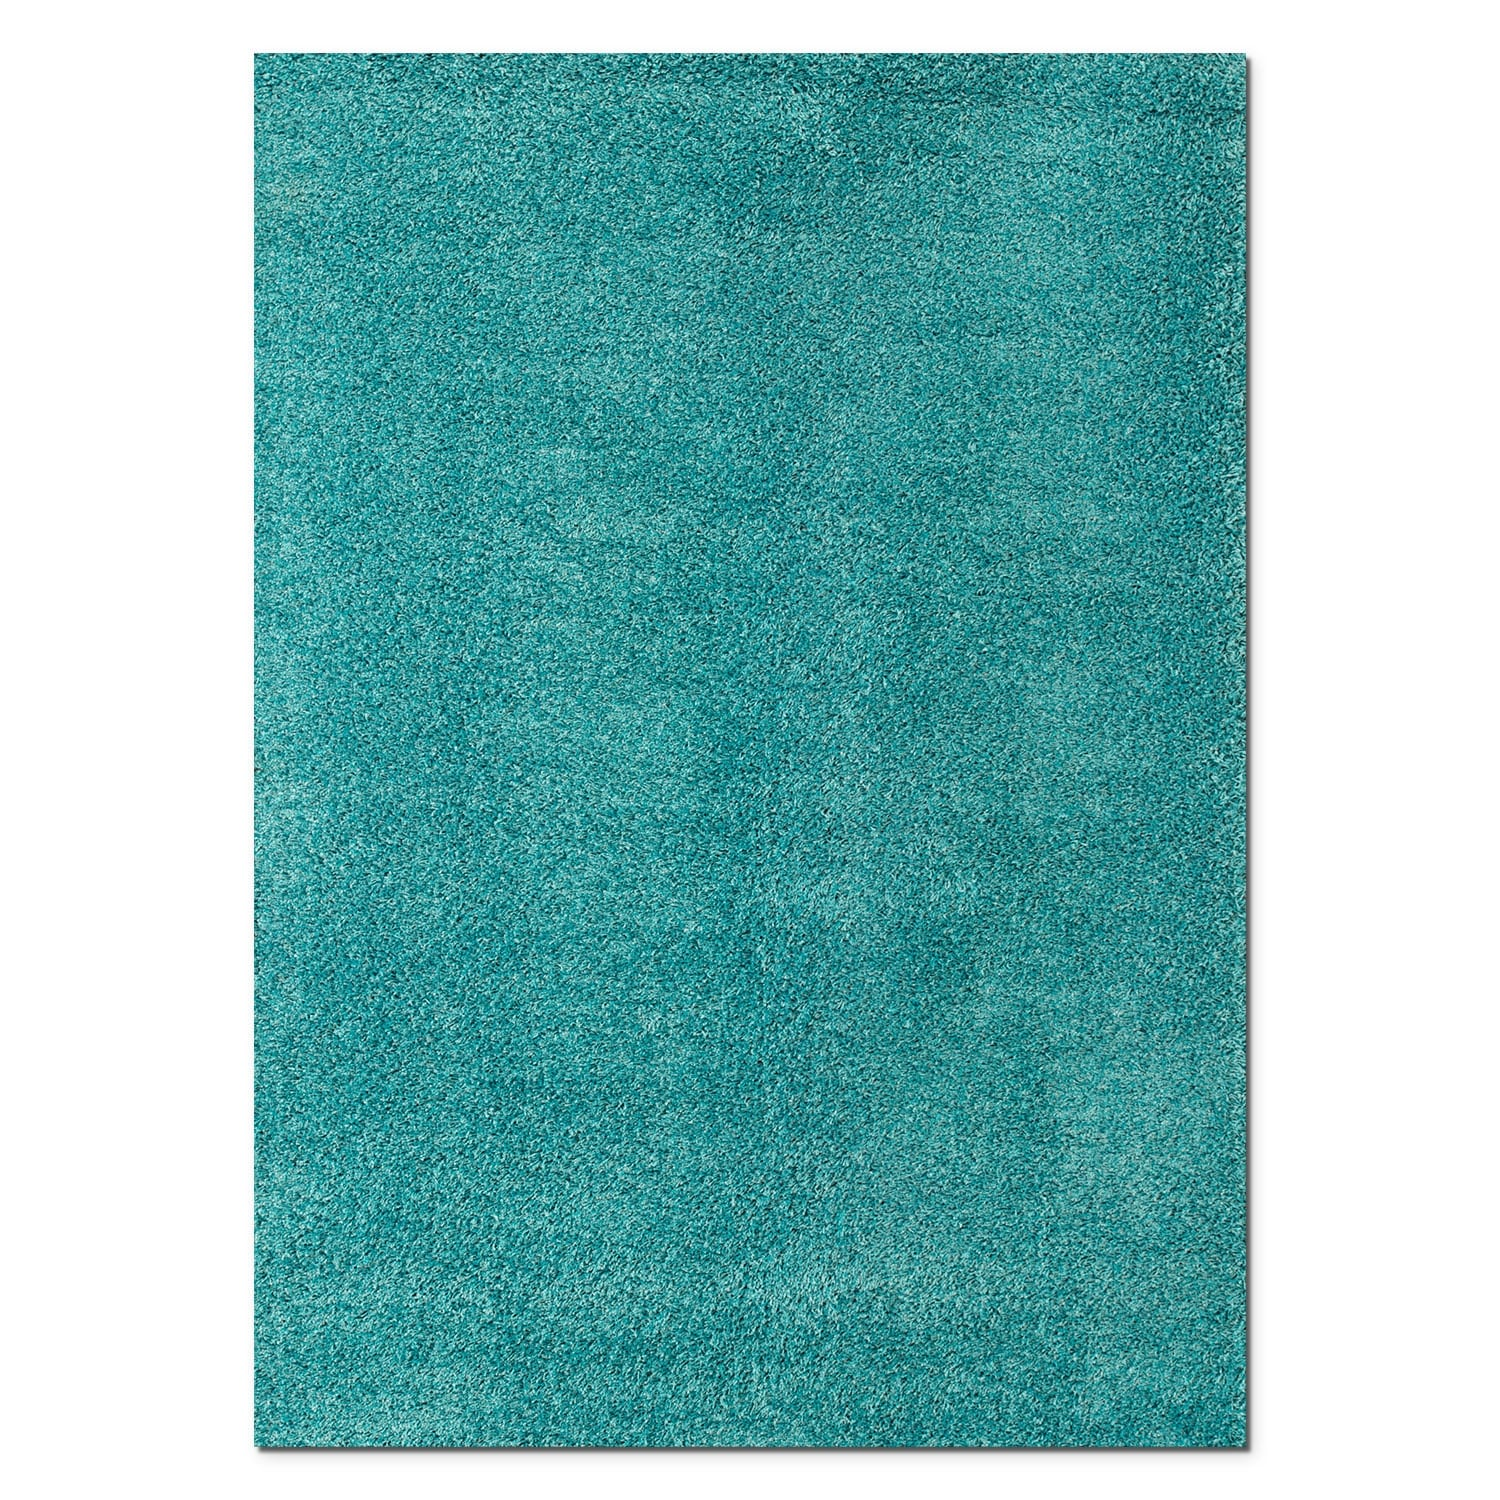 Rugs - Domino Shag Area Rug - Turquoise